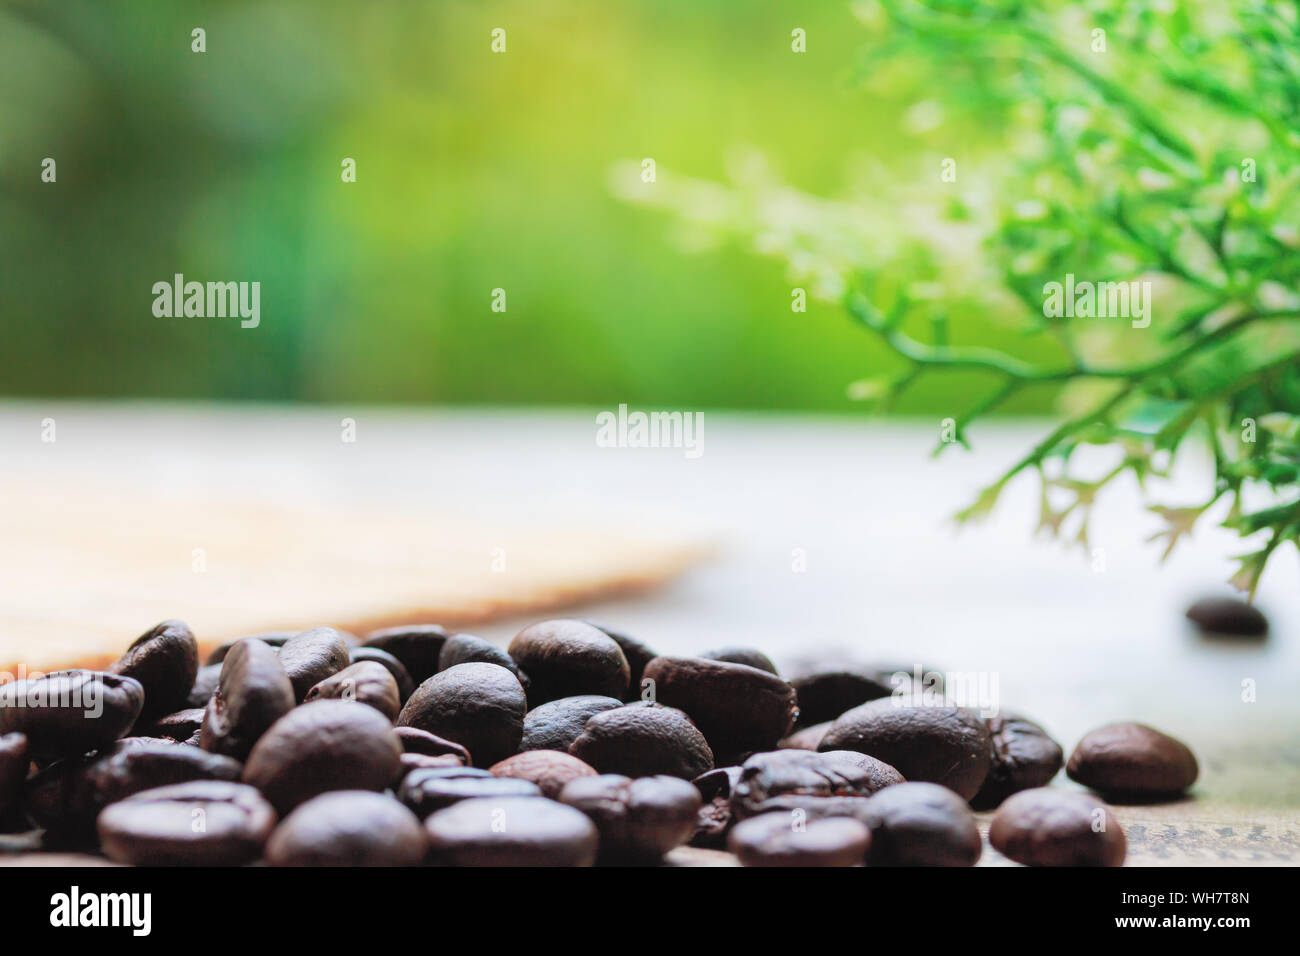 Close Up Of Coffee Beans On Table Stock Photo 268777397 Alamy